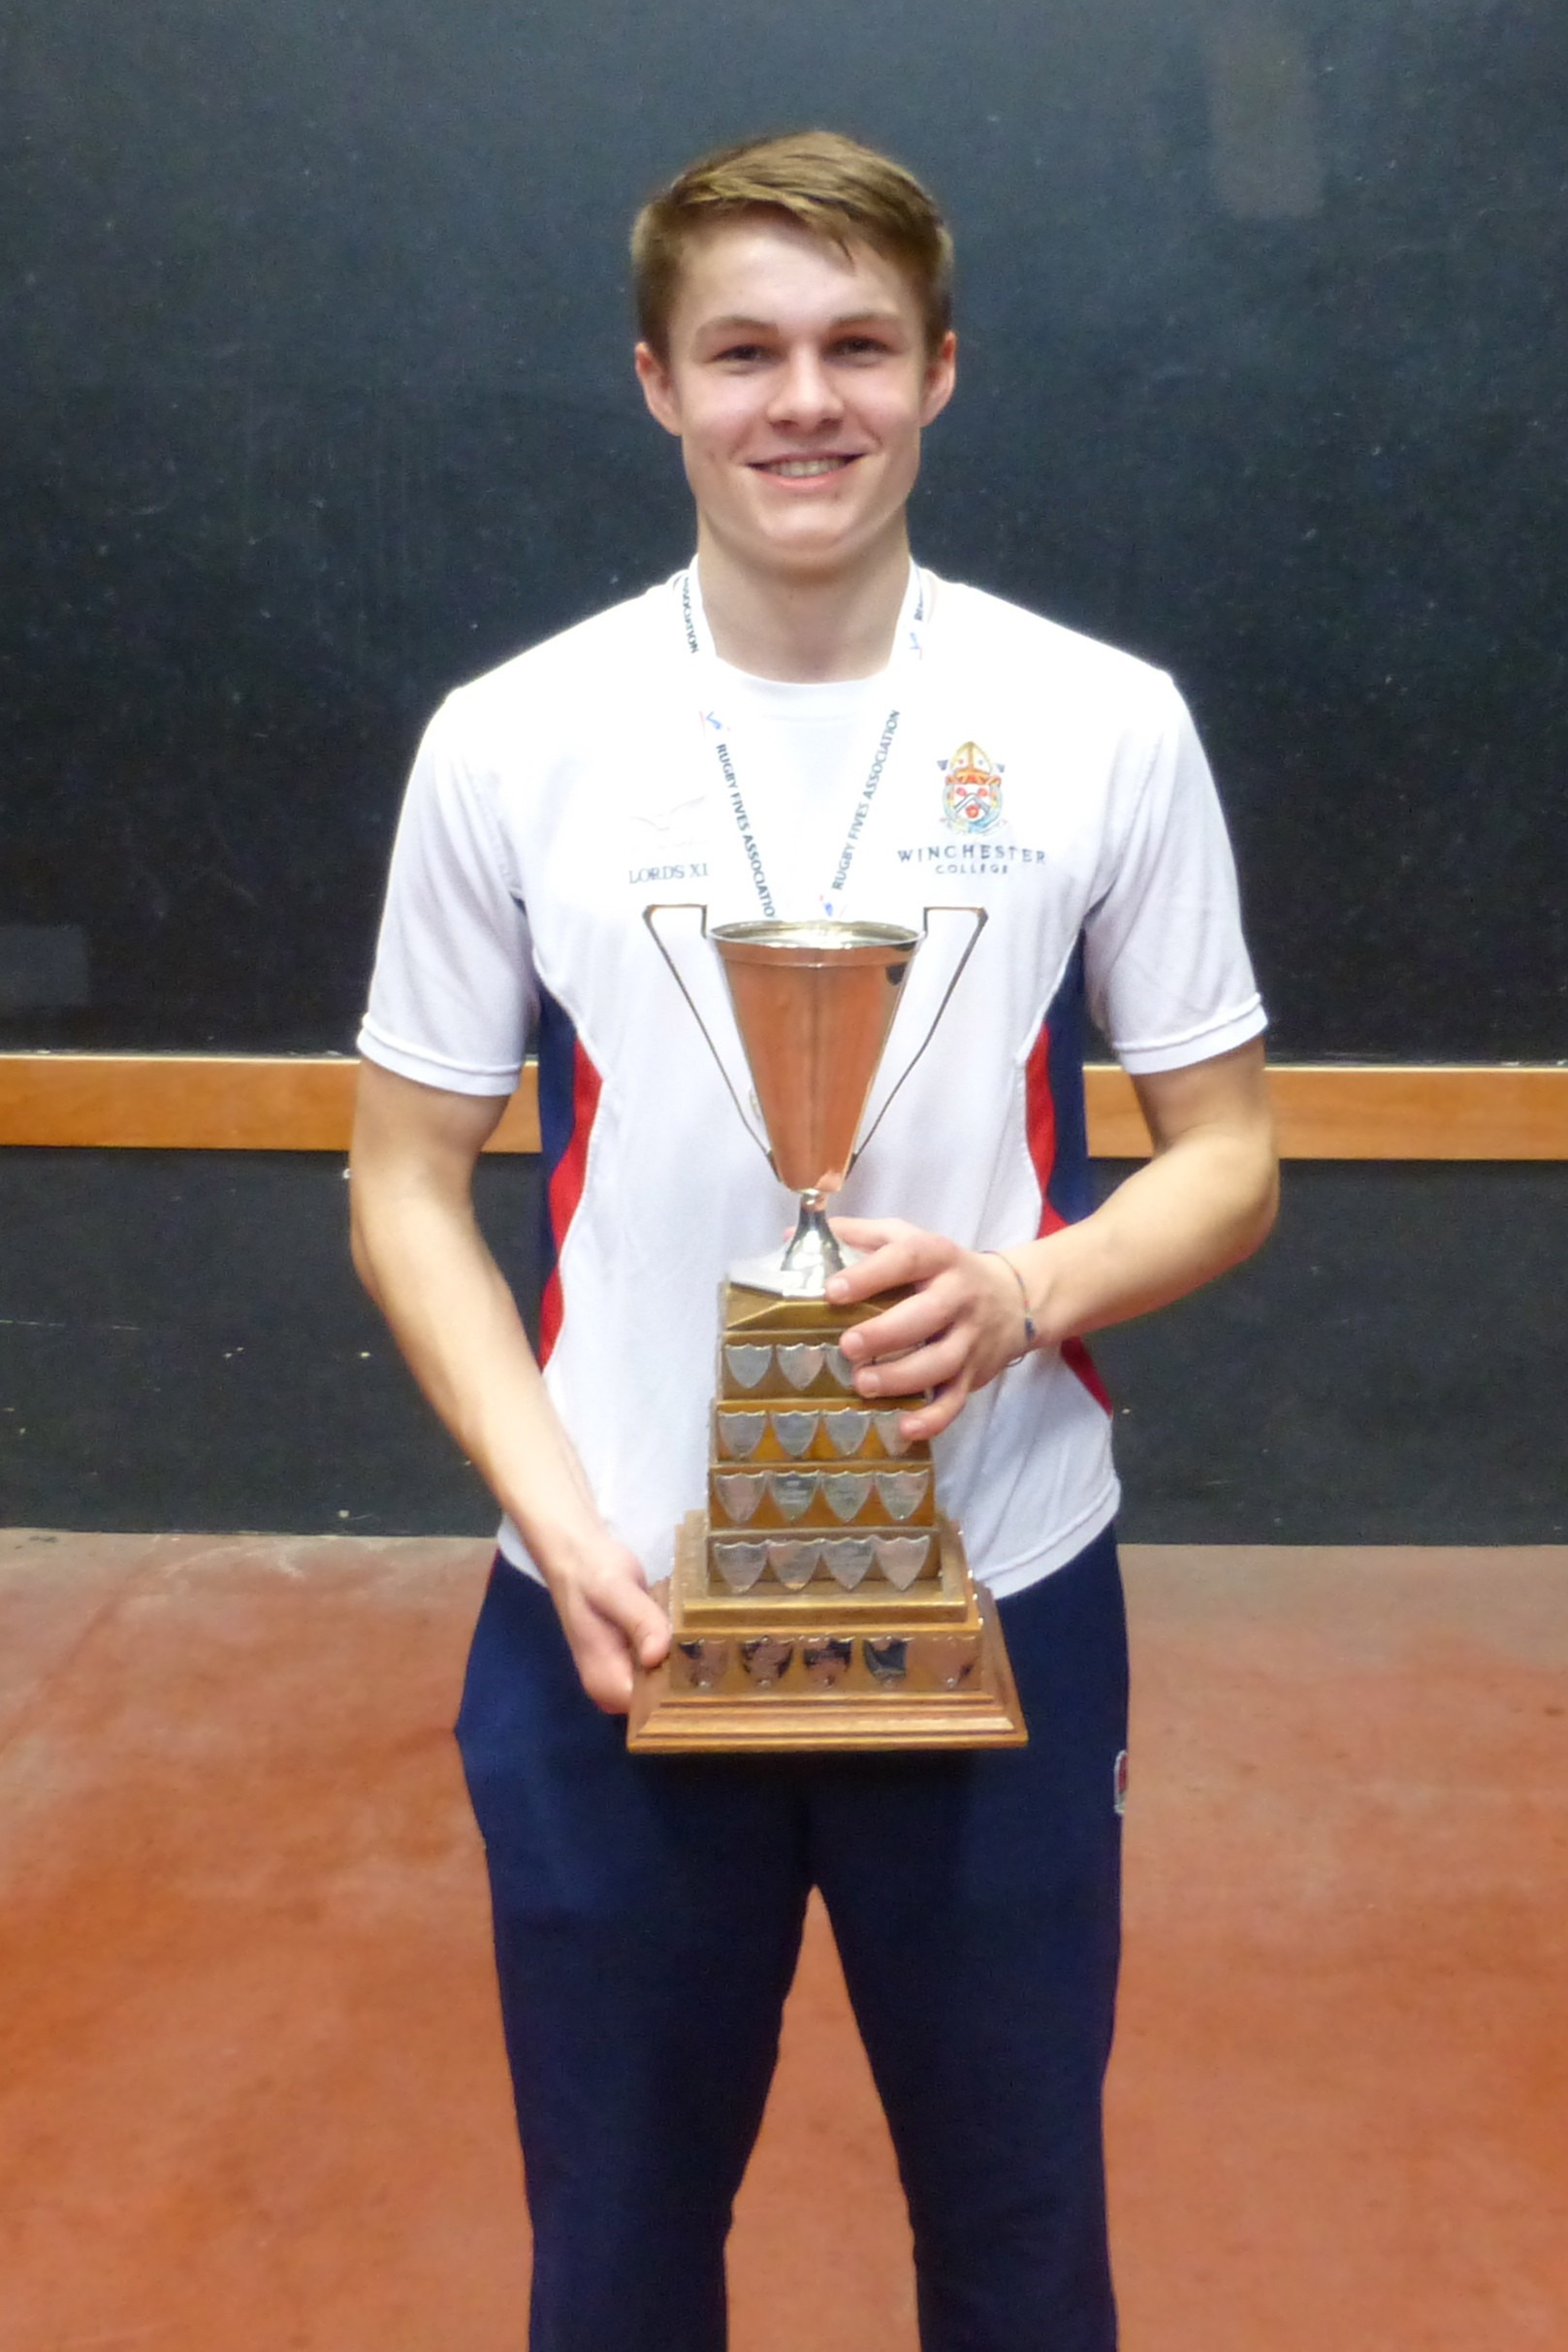 Two-time Winner of the Jesters Cup for Open Singles